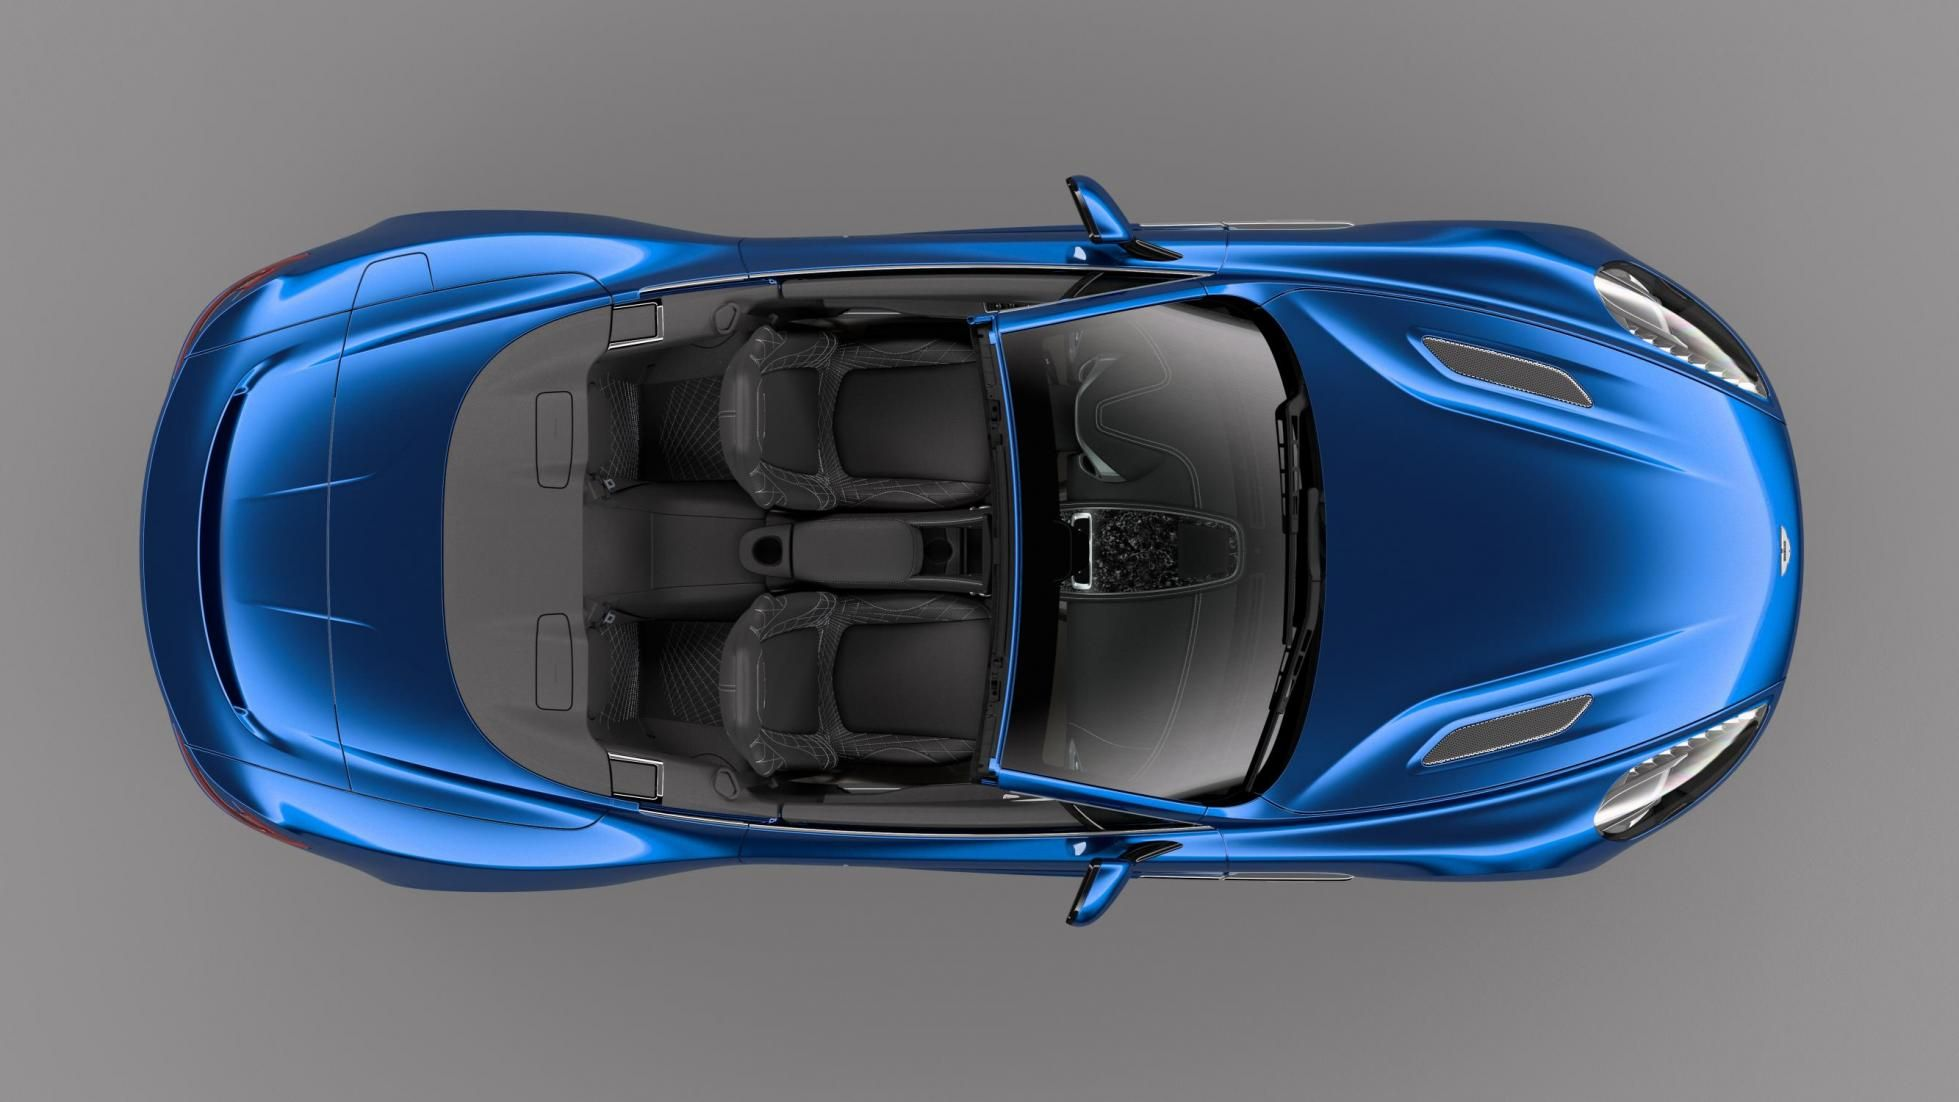 Aston Martin have unveiled their brand new convertible supercar